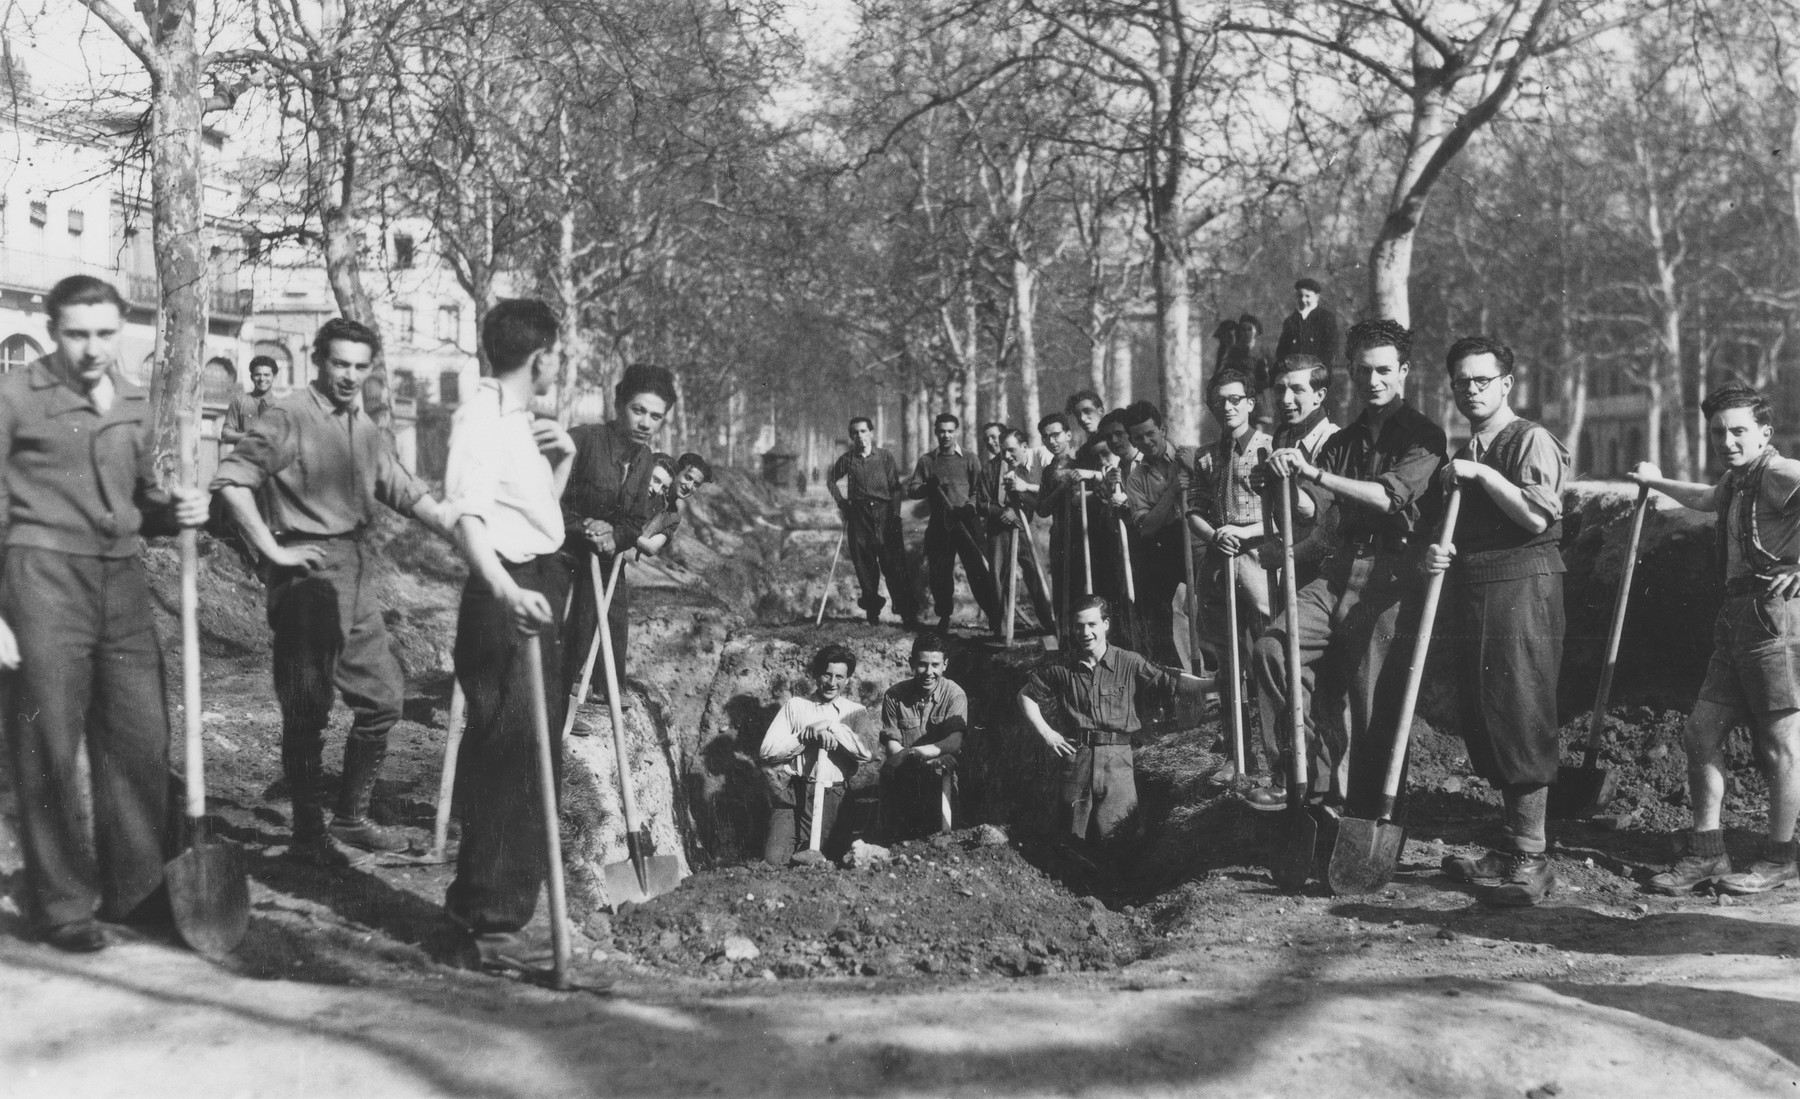 Jewish youth from the Union de la Jeunesse Juif pose with shovels alongside a trench they are filling with dirt after the liberation.